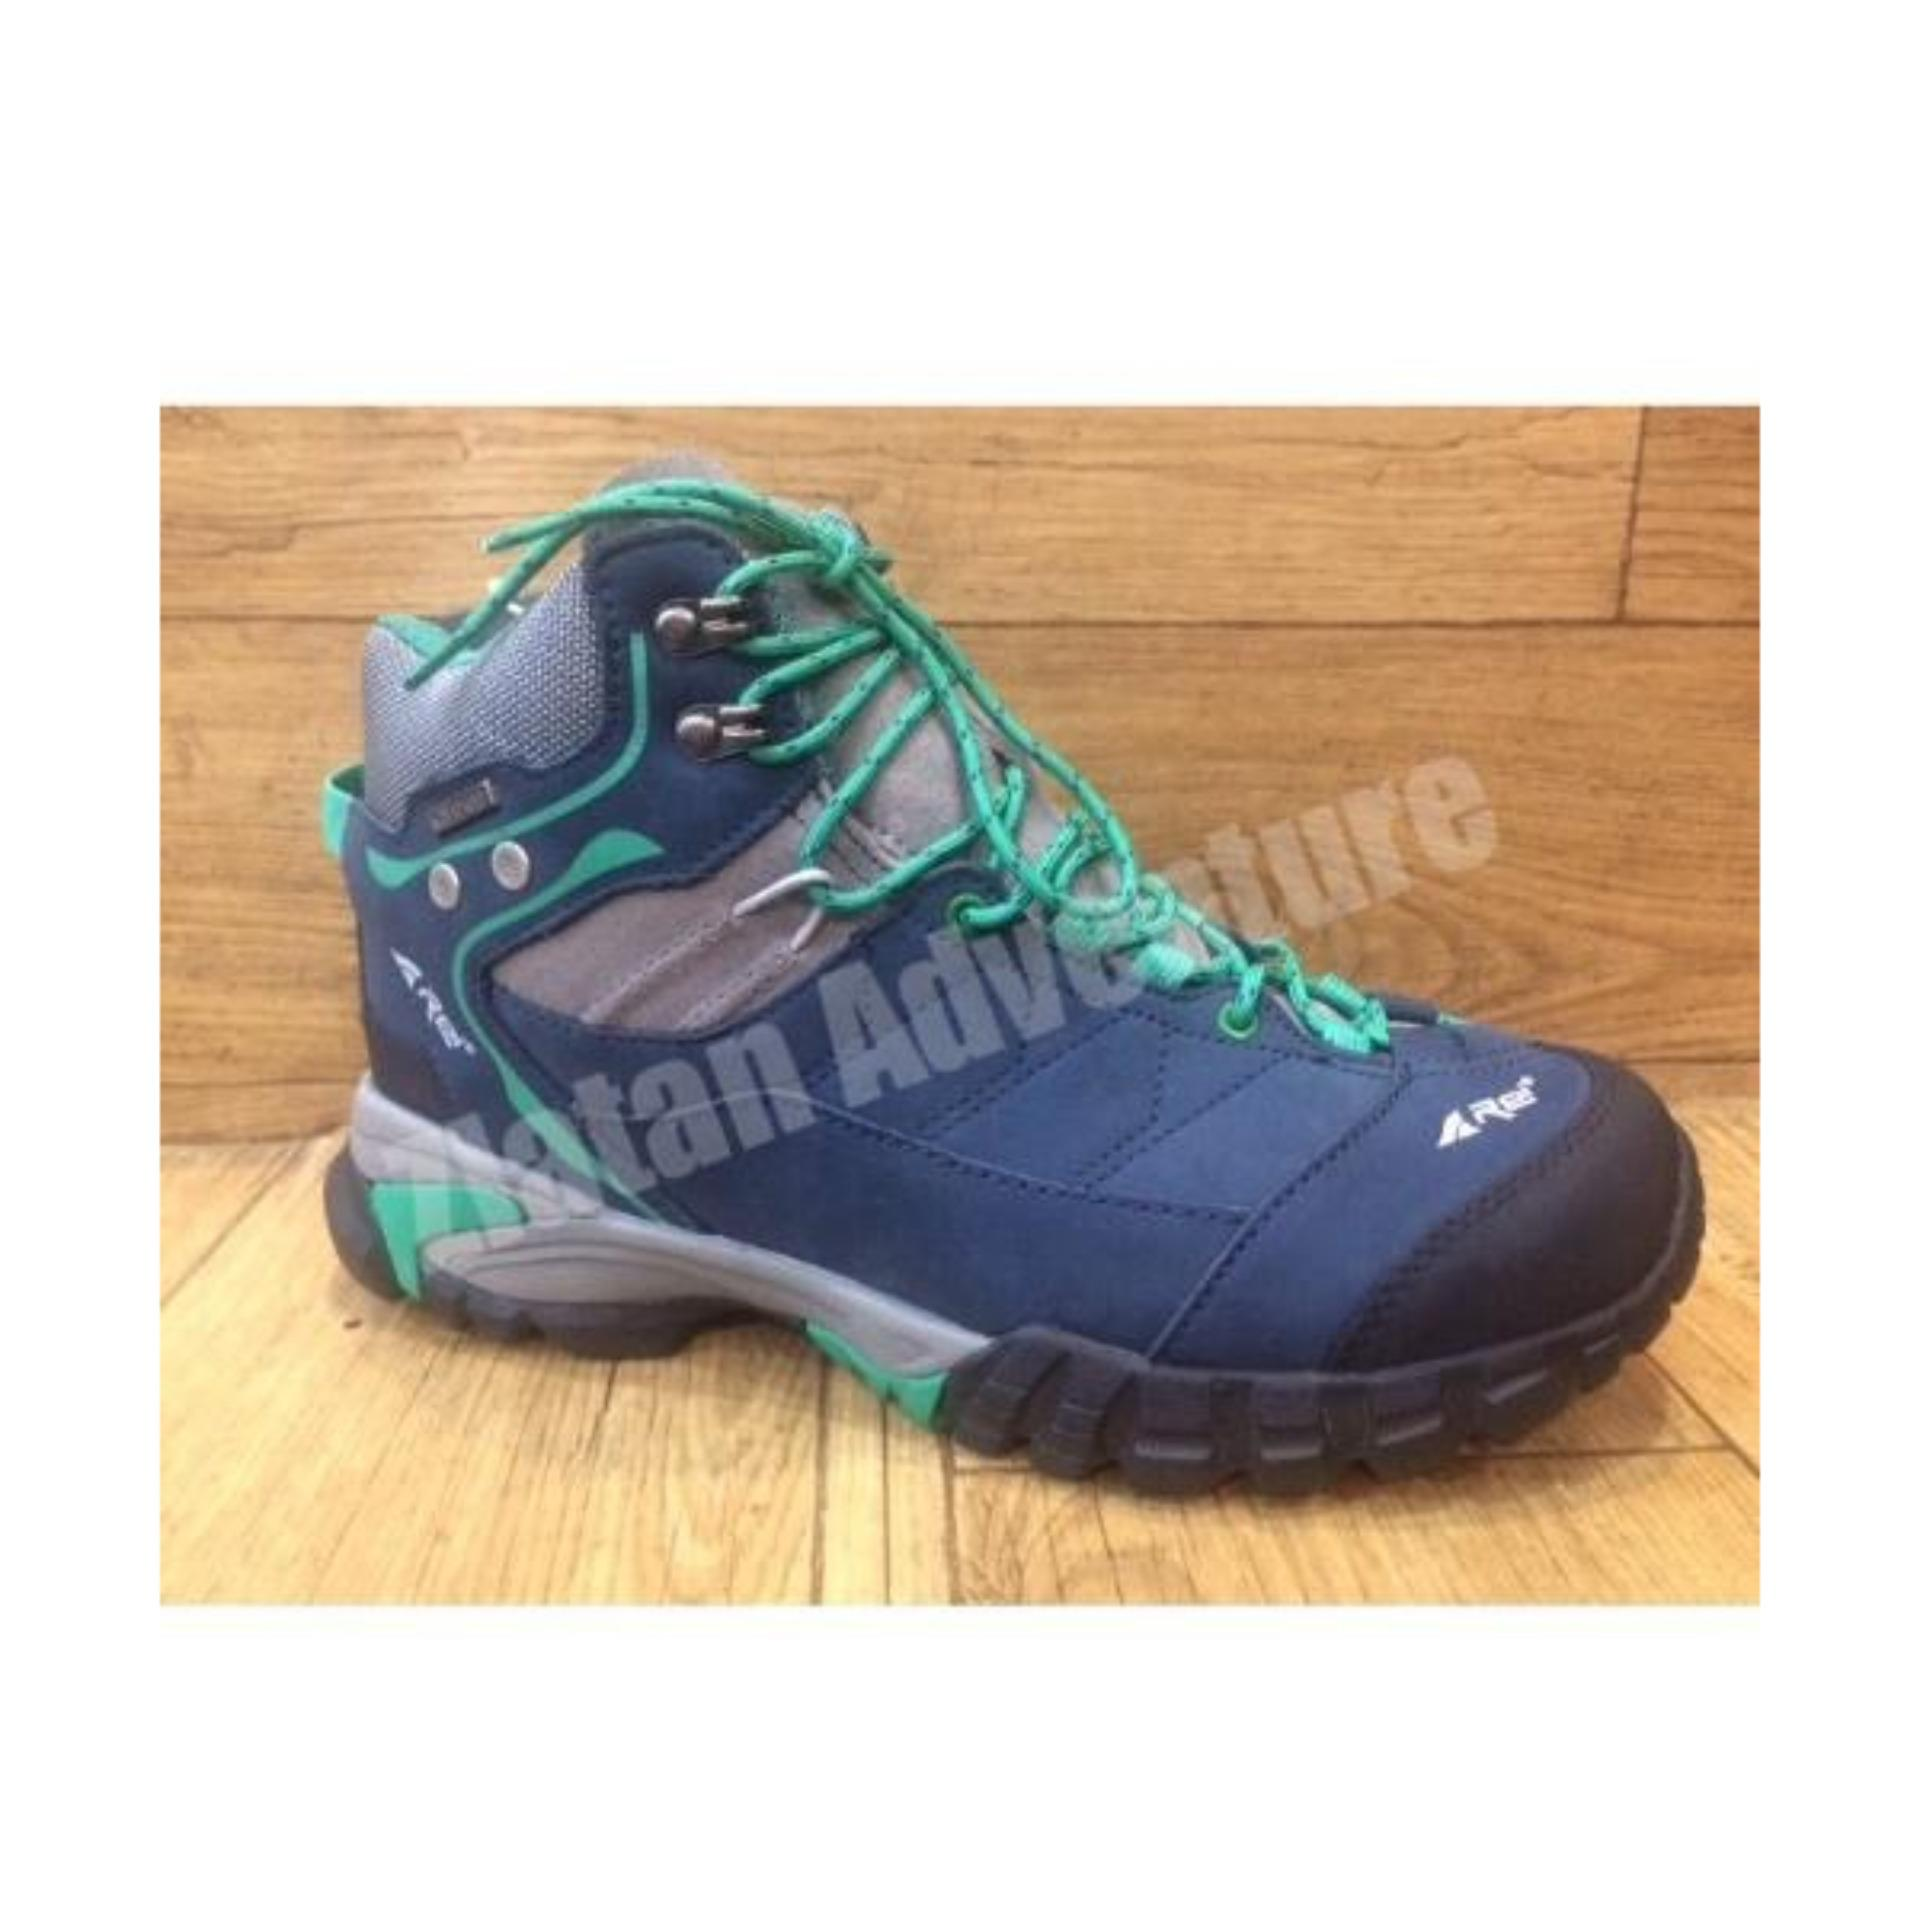 Review Sepatu Gunung Hiking Waterproof Rei Adventure Silverback Zatan Adventure Store Rei Di Indonesia